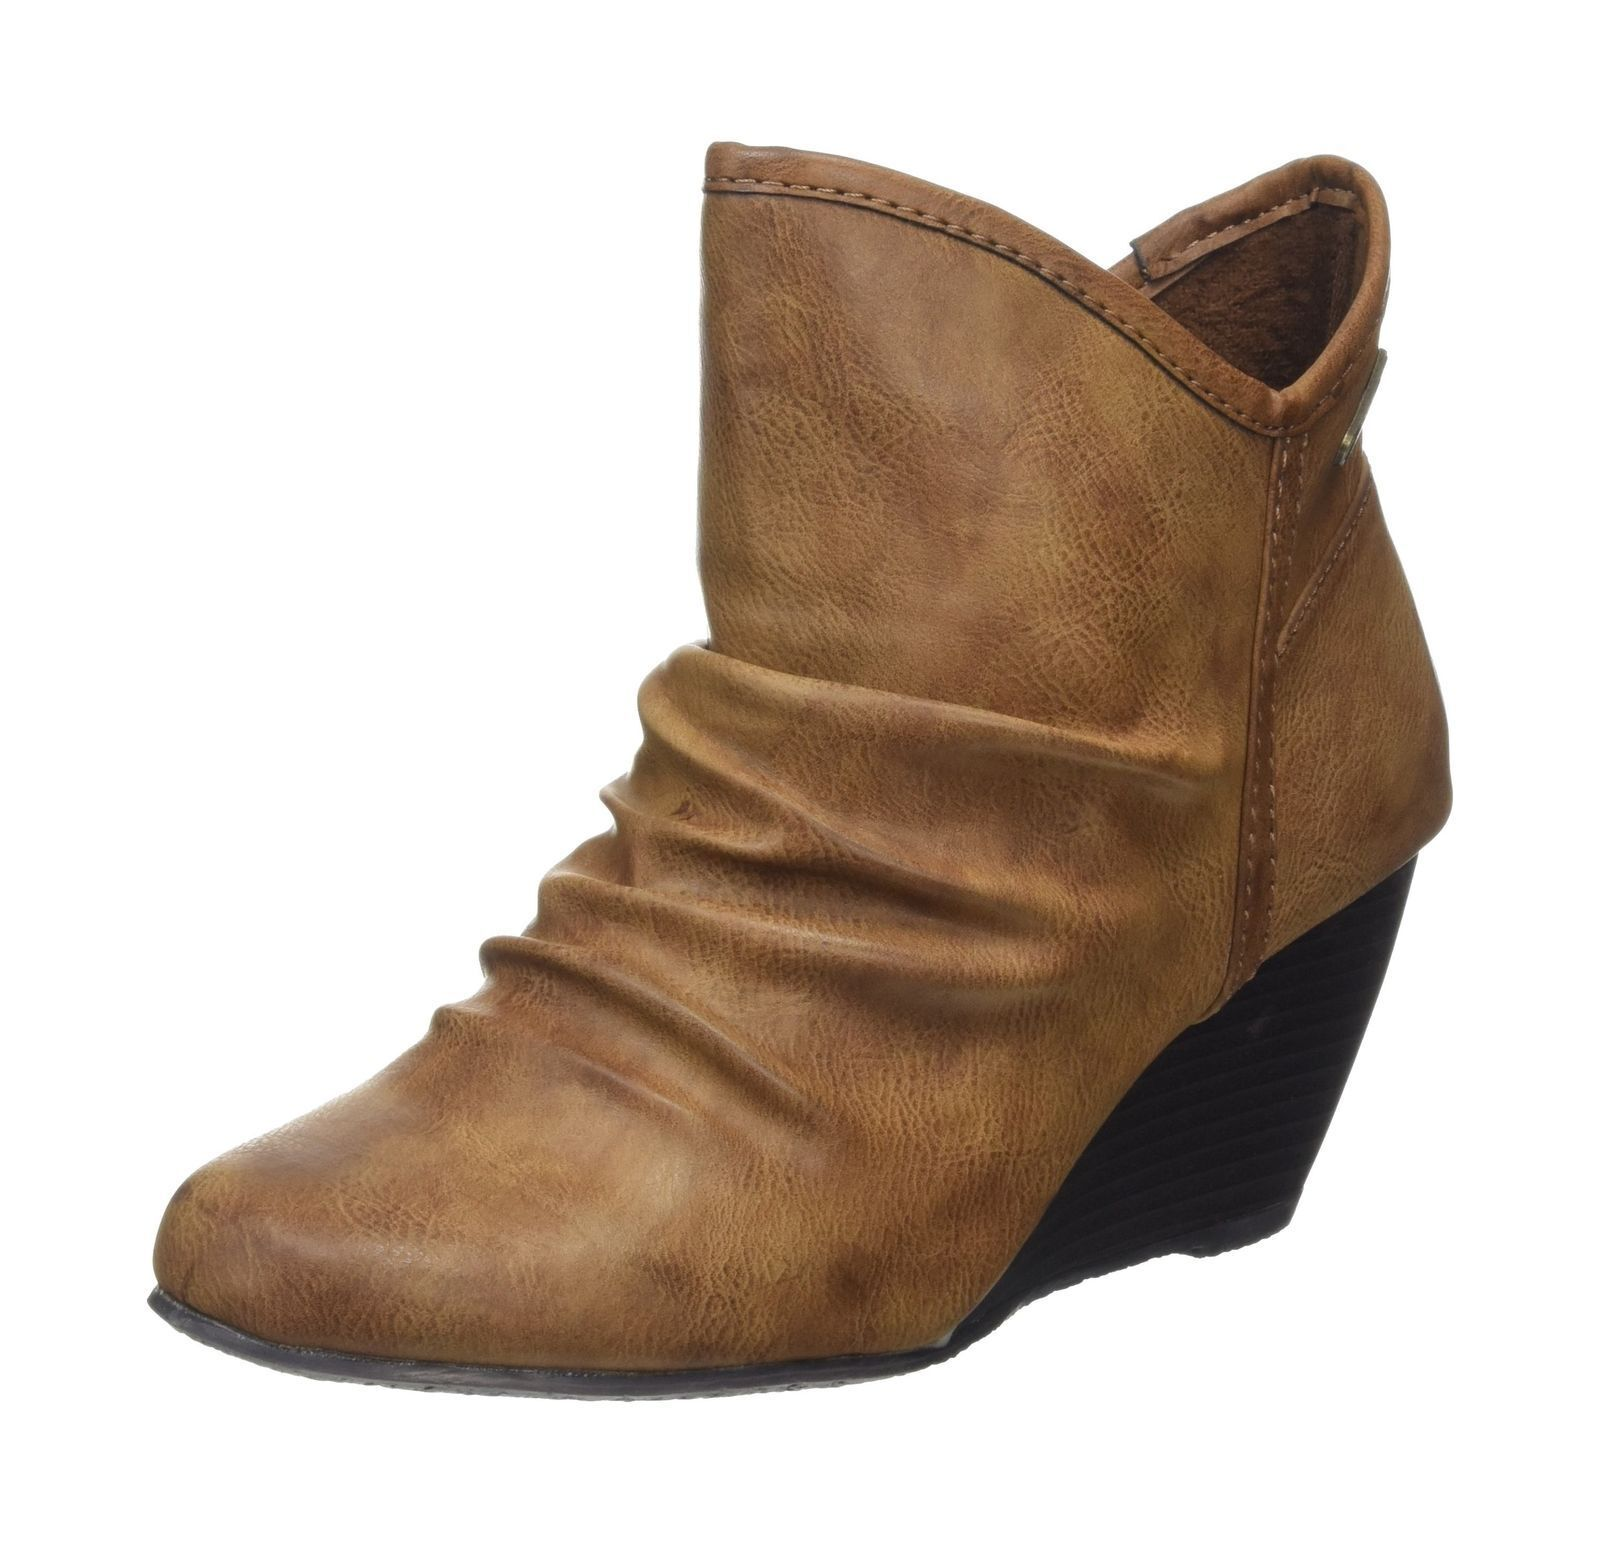 Womens Blowfish Billit Brown (Whiskey) Ankle Wedge Boots Size UK 3 EU 36